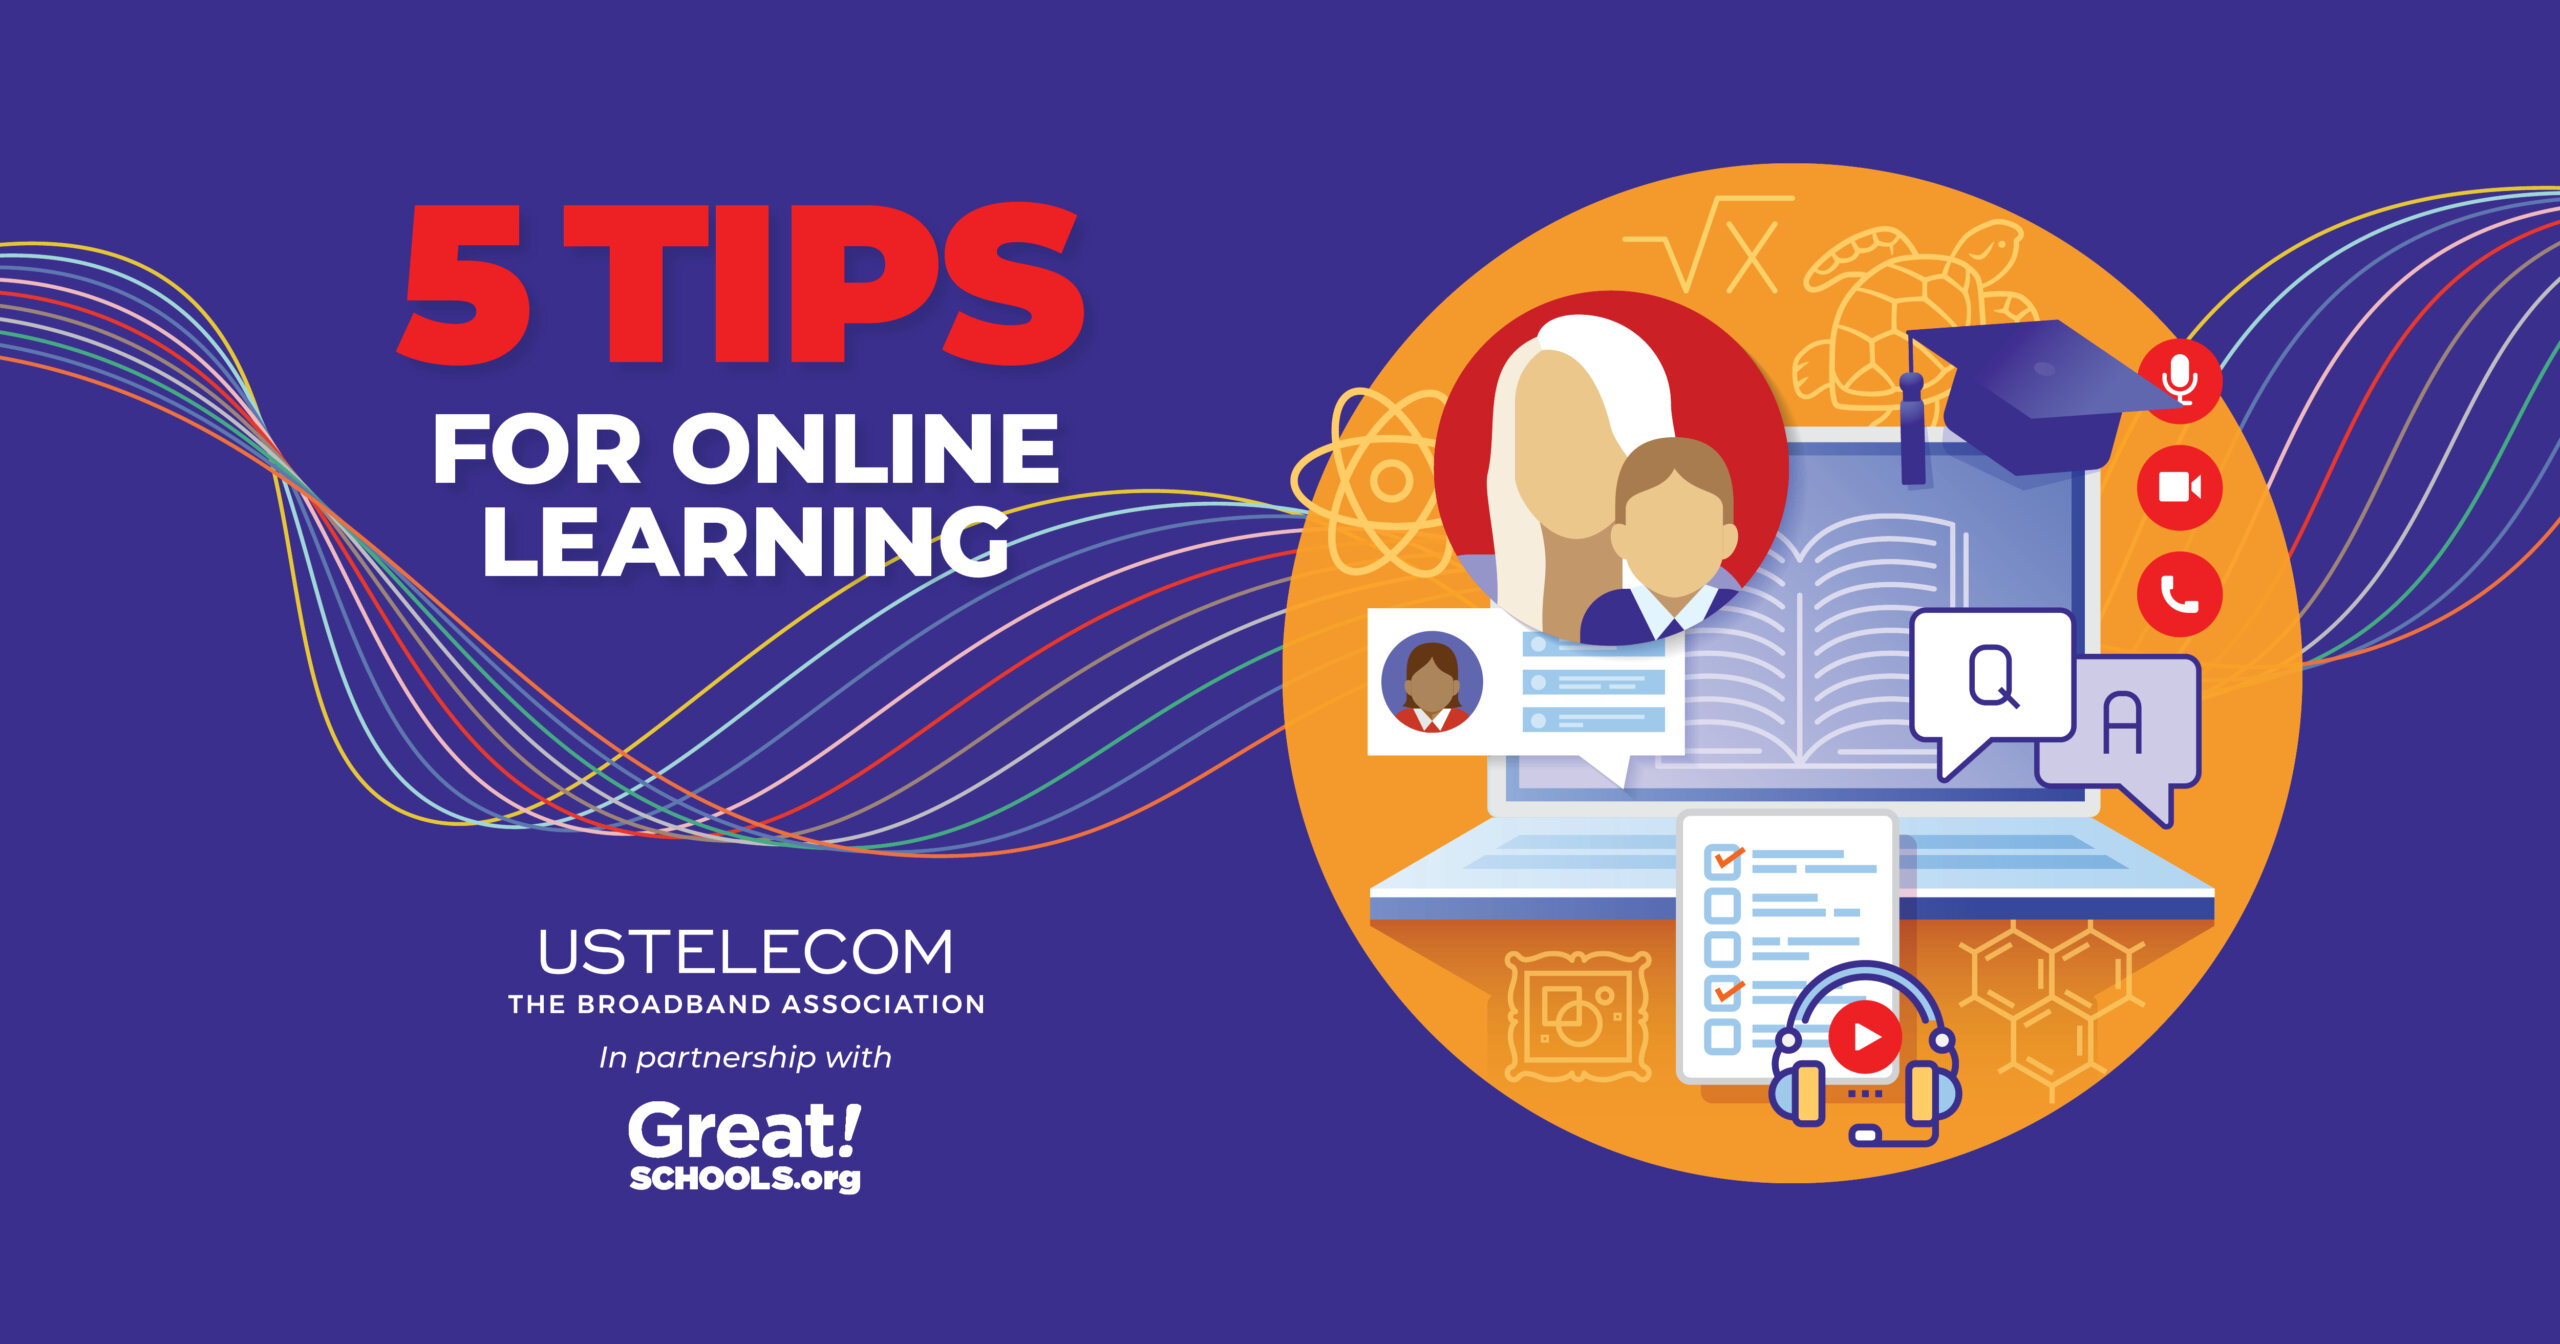 5 Tips for Online Learning 1